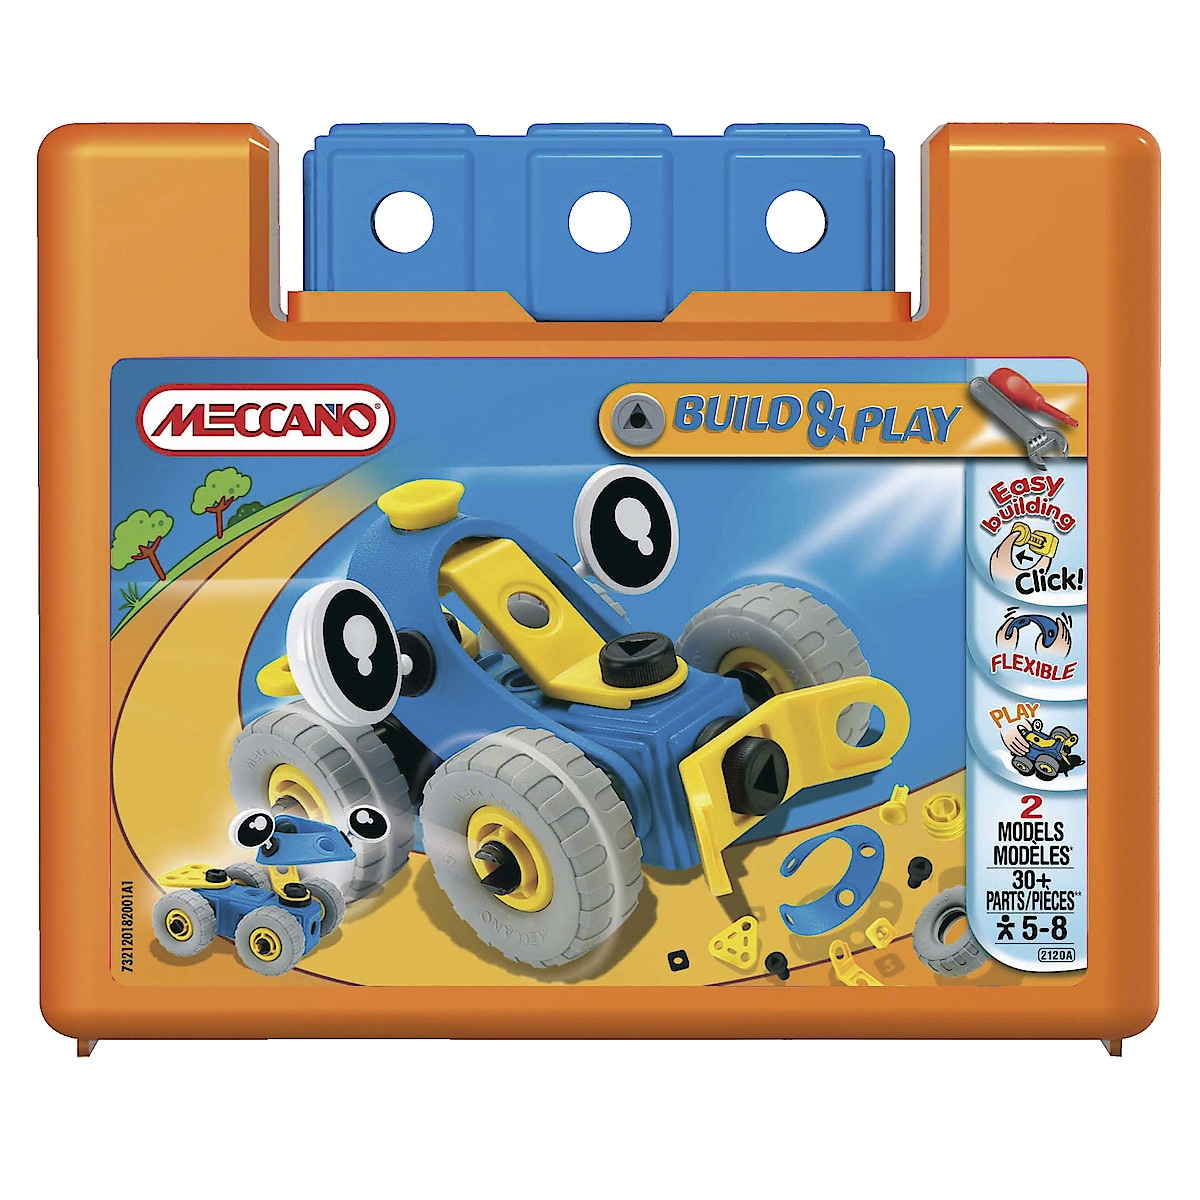 Meccano Build & Play